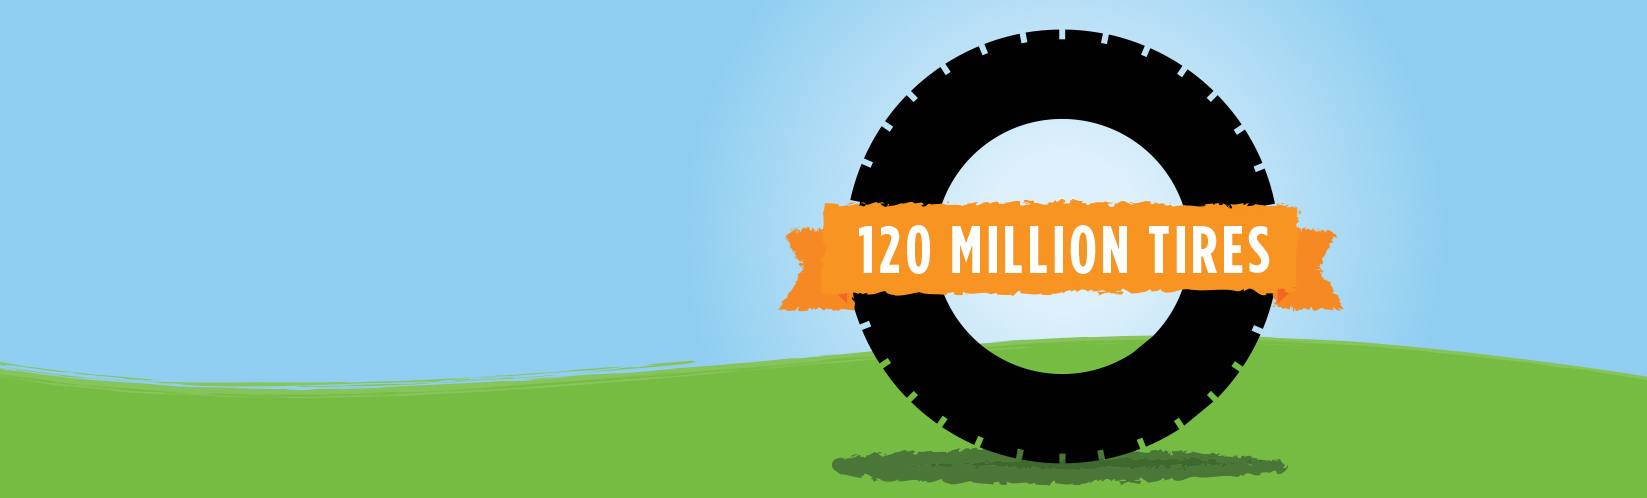 TIME TO CELEBRATE!   WITH YOUR HELP,  WE'VE RECYCLED 100 MILLION TIRES